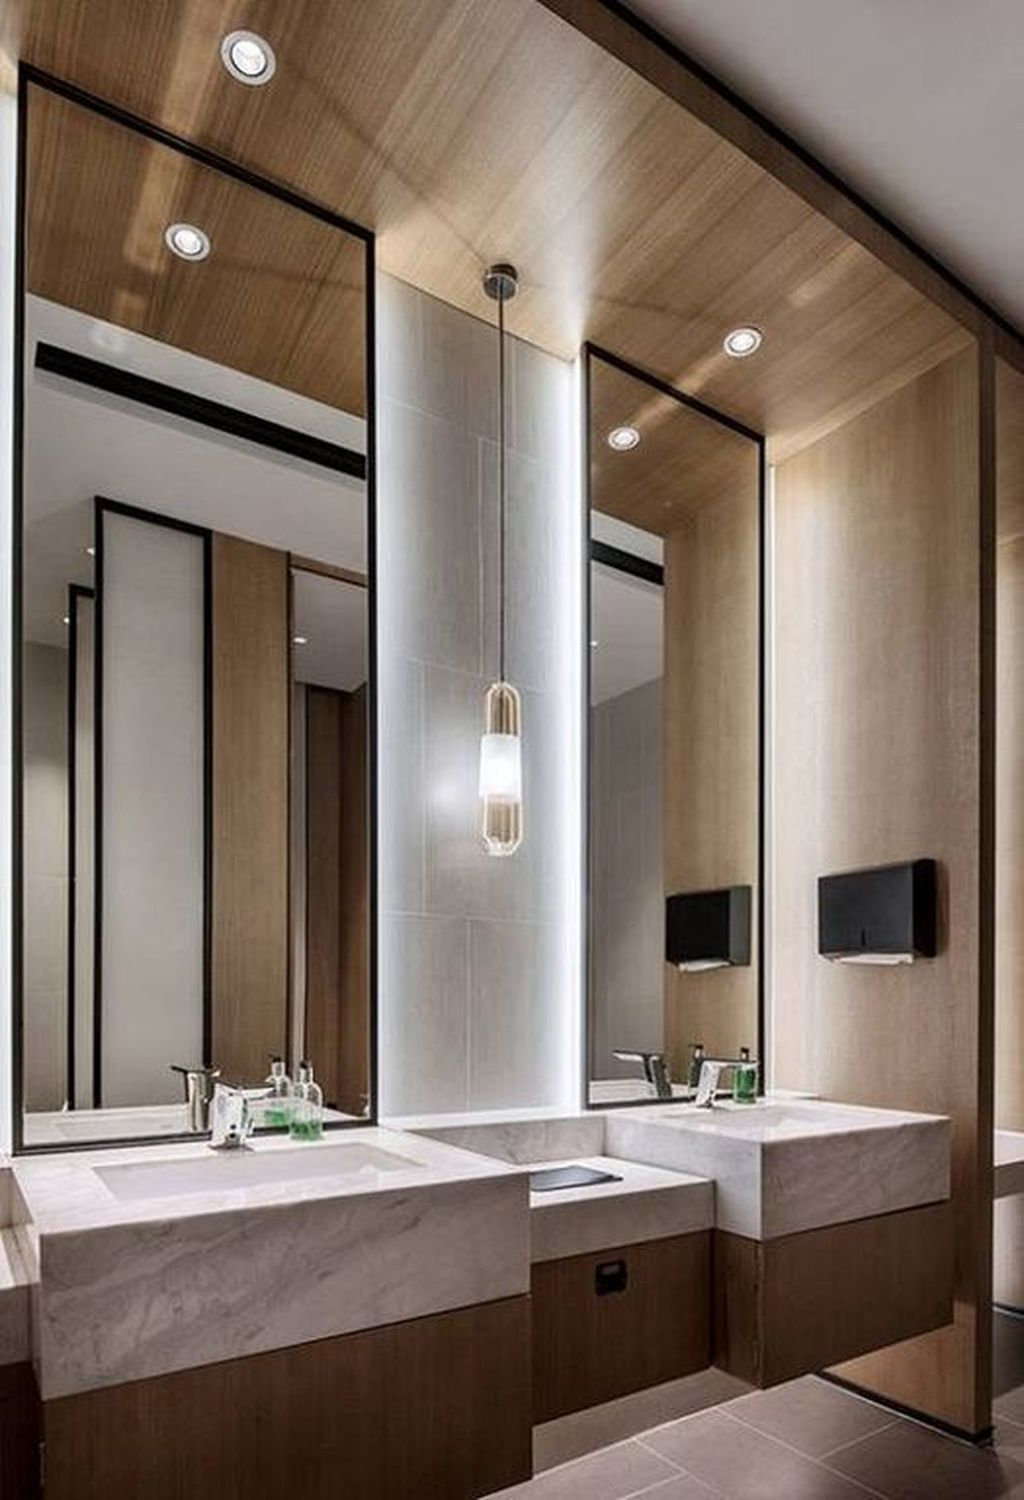 Awesome 37 Modern Apartment Bathroom Designs Ideas For Men More At Https Homyfeed Com 2019 Modern Luxury Bathroom Apartment Bathroom Design Modern Bathroom